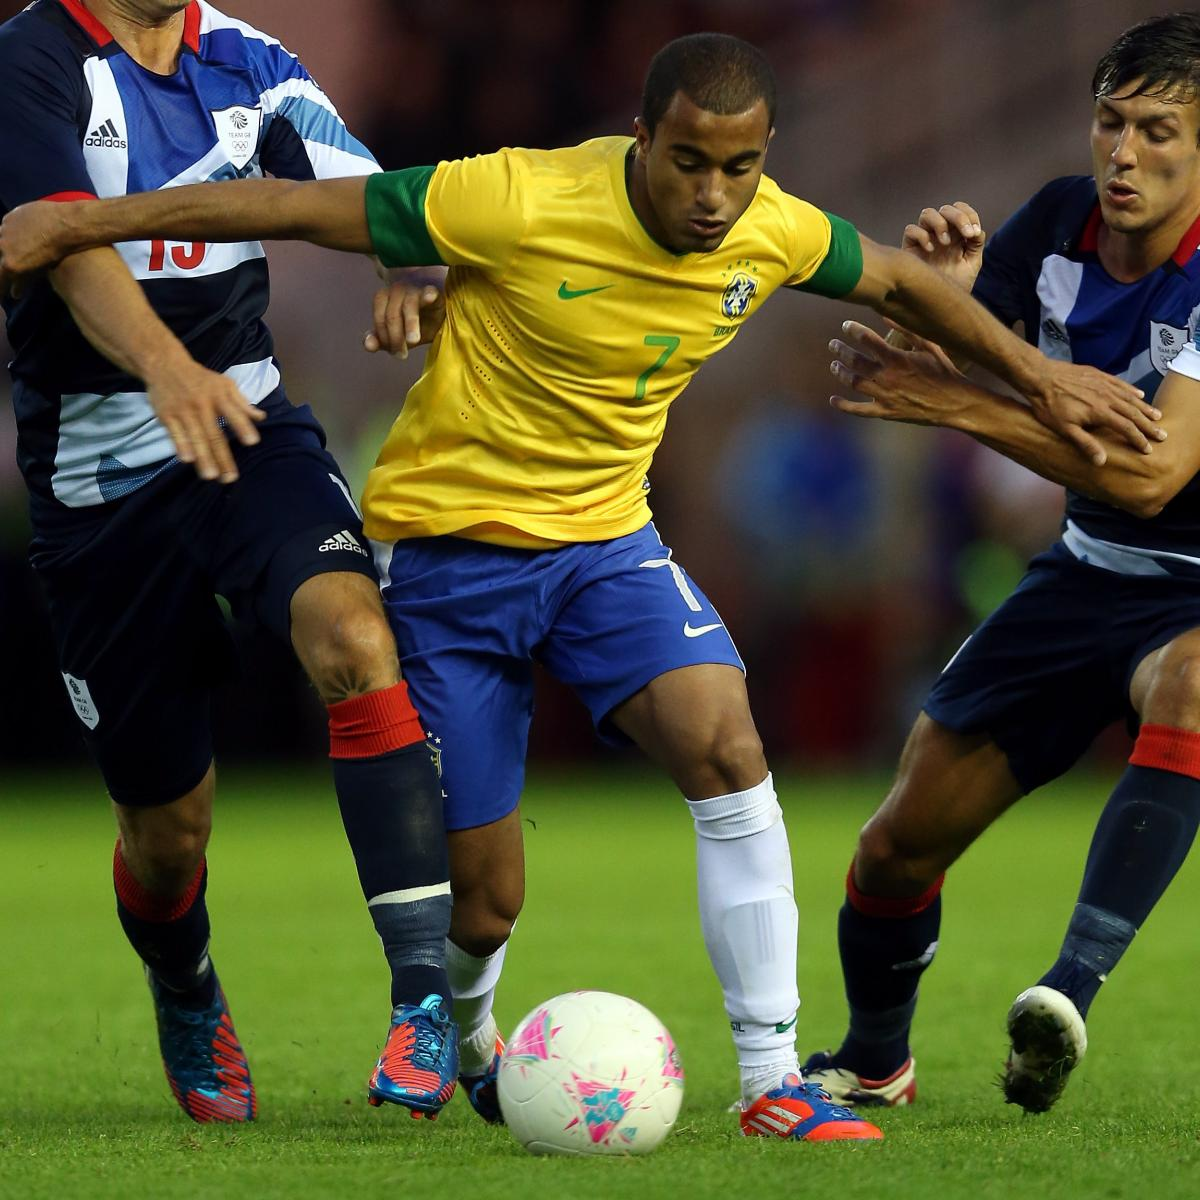 Lucas Moura Sao Paulo: Lucas Moura: 5 Reasons The PSG Signee Will Be The Steal Of